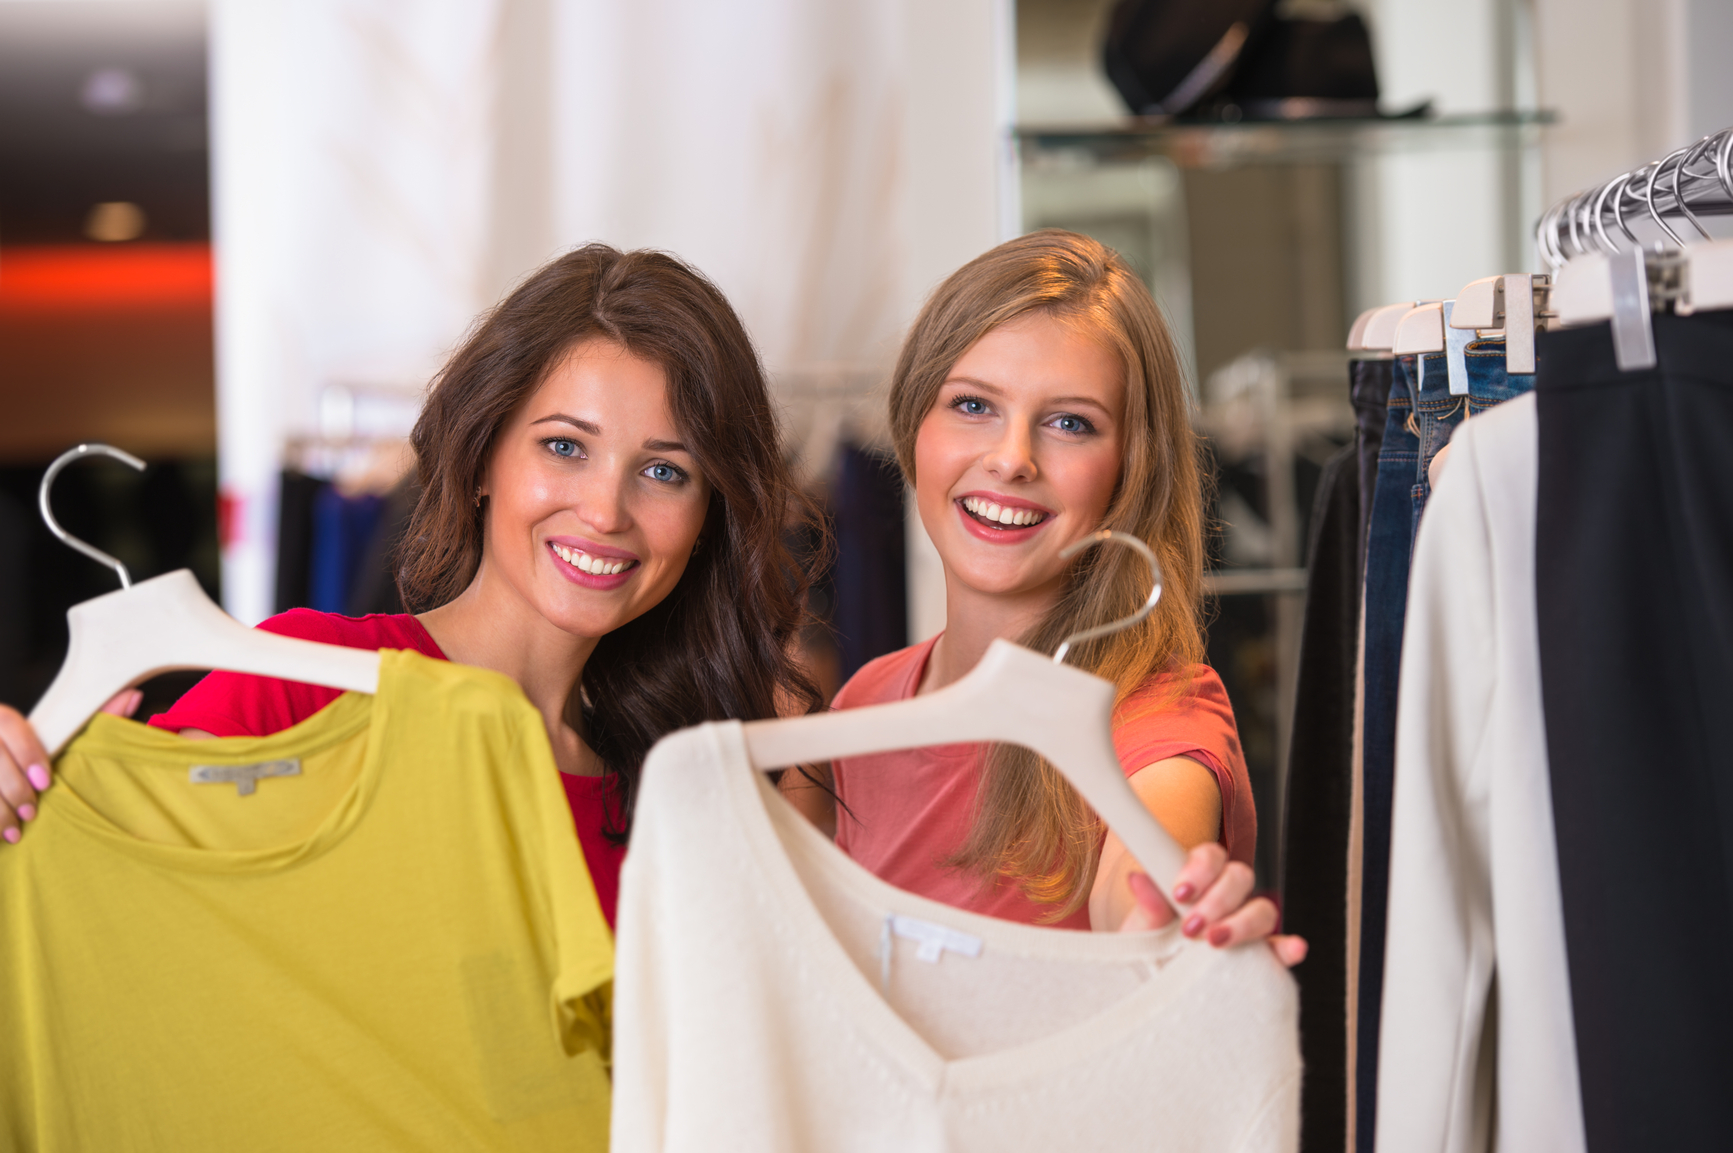 5d7366cb8 4 Smart Ways To Save Money On Women's Clothes - Fashion Industry Network